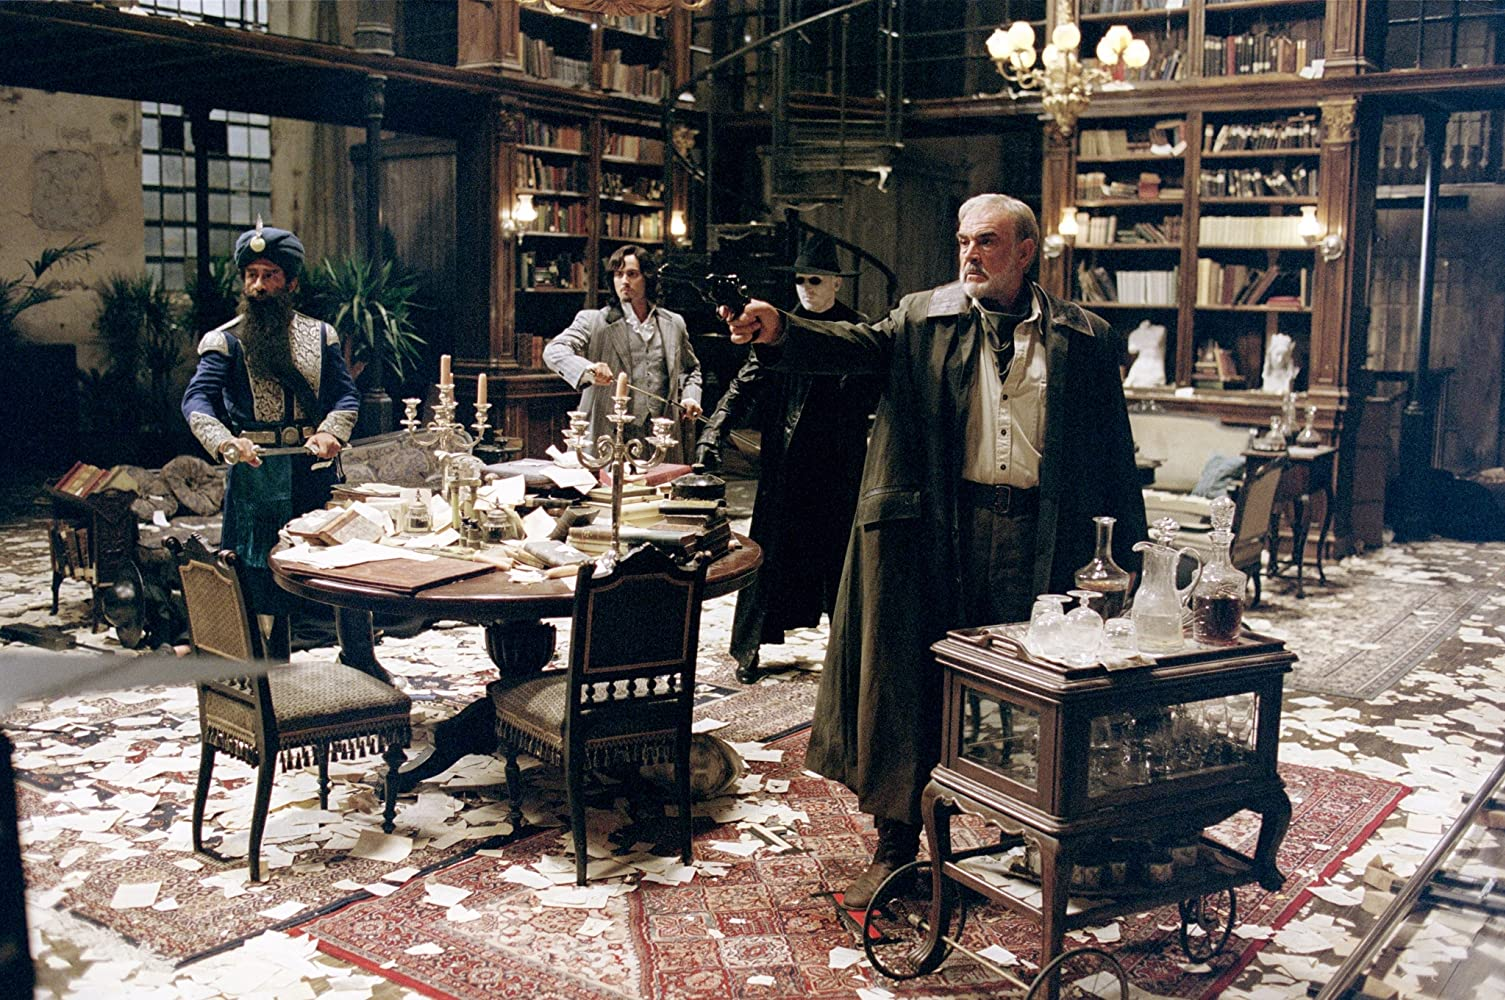 Sean Connery, Naseeruddin Shah, and Stuart Townsend in The League of Extraordinary Gentlemen (2003)